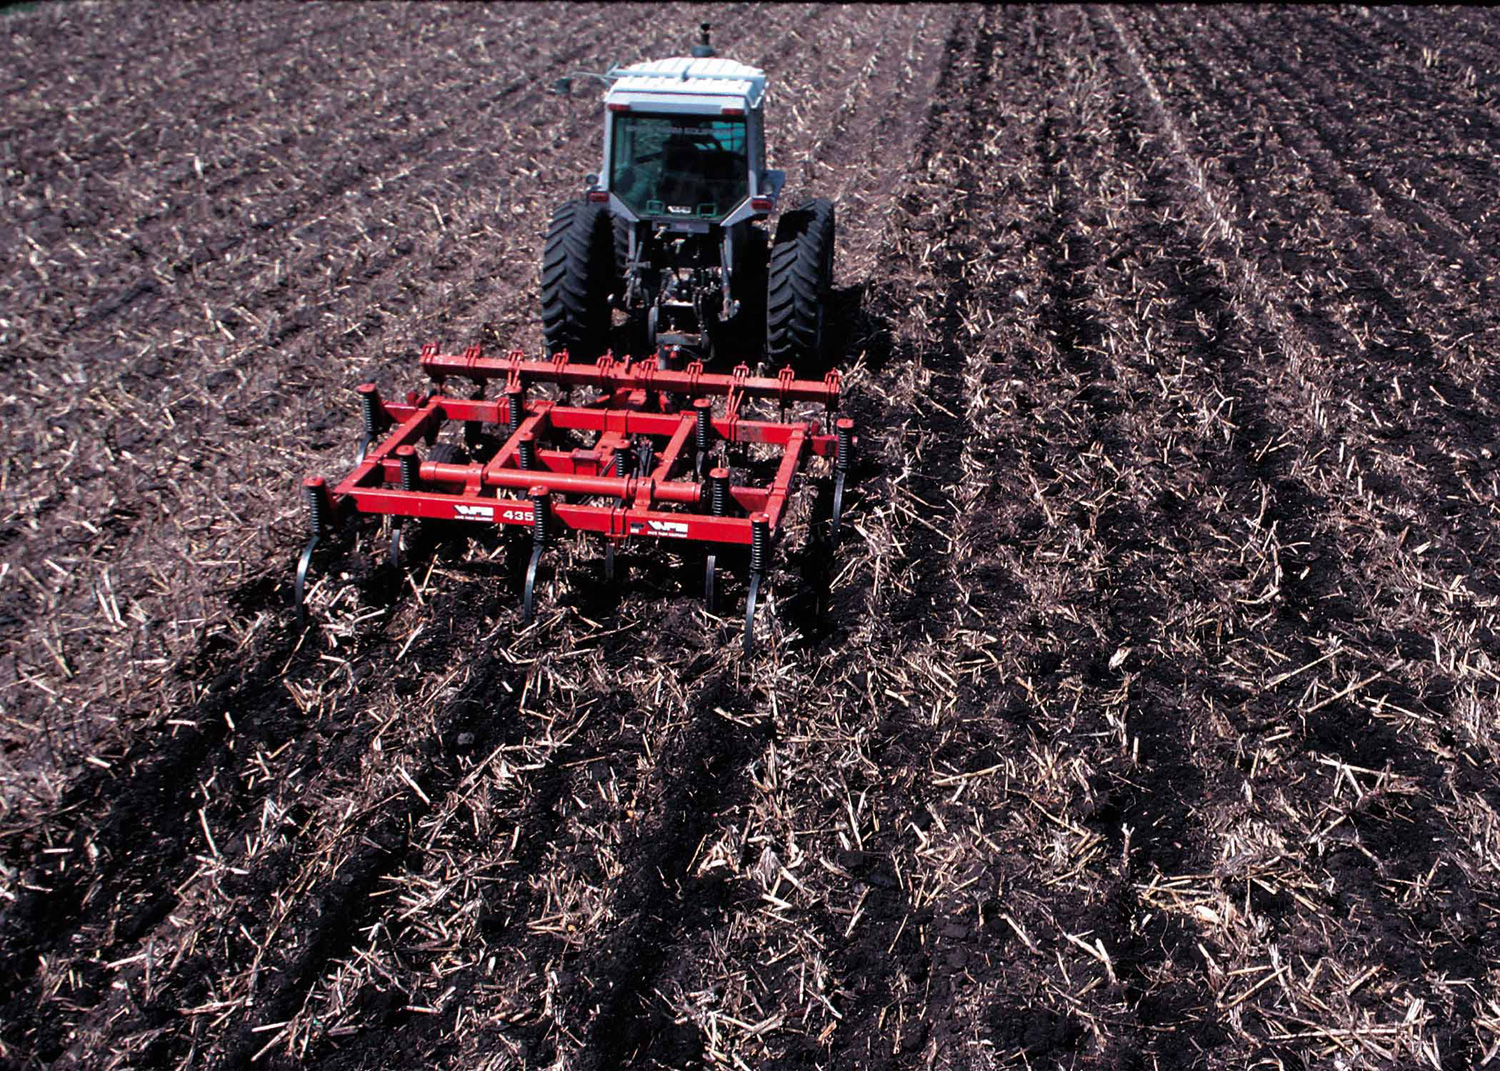 tractor pulling small plow through dirt field covered in plant debris